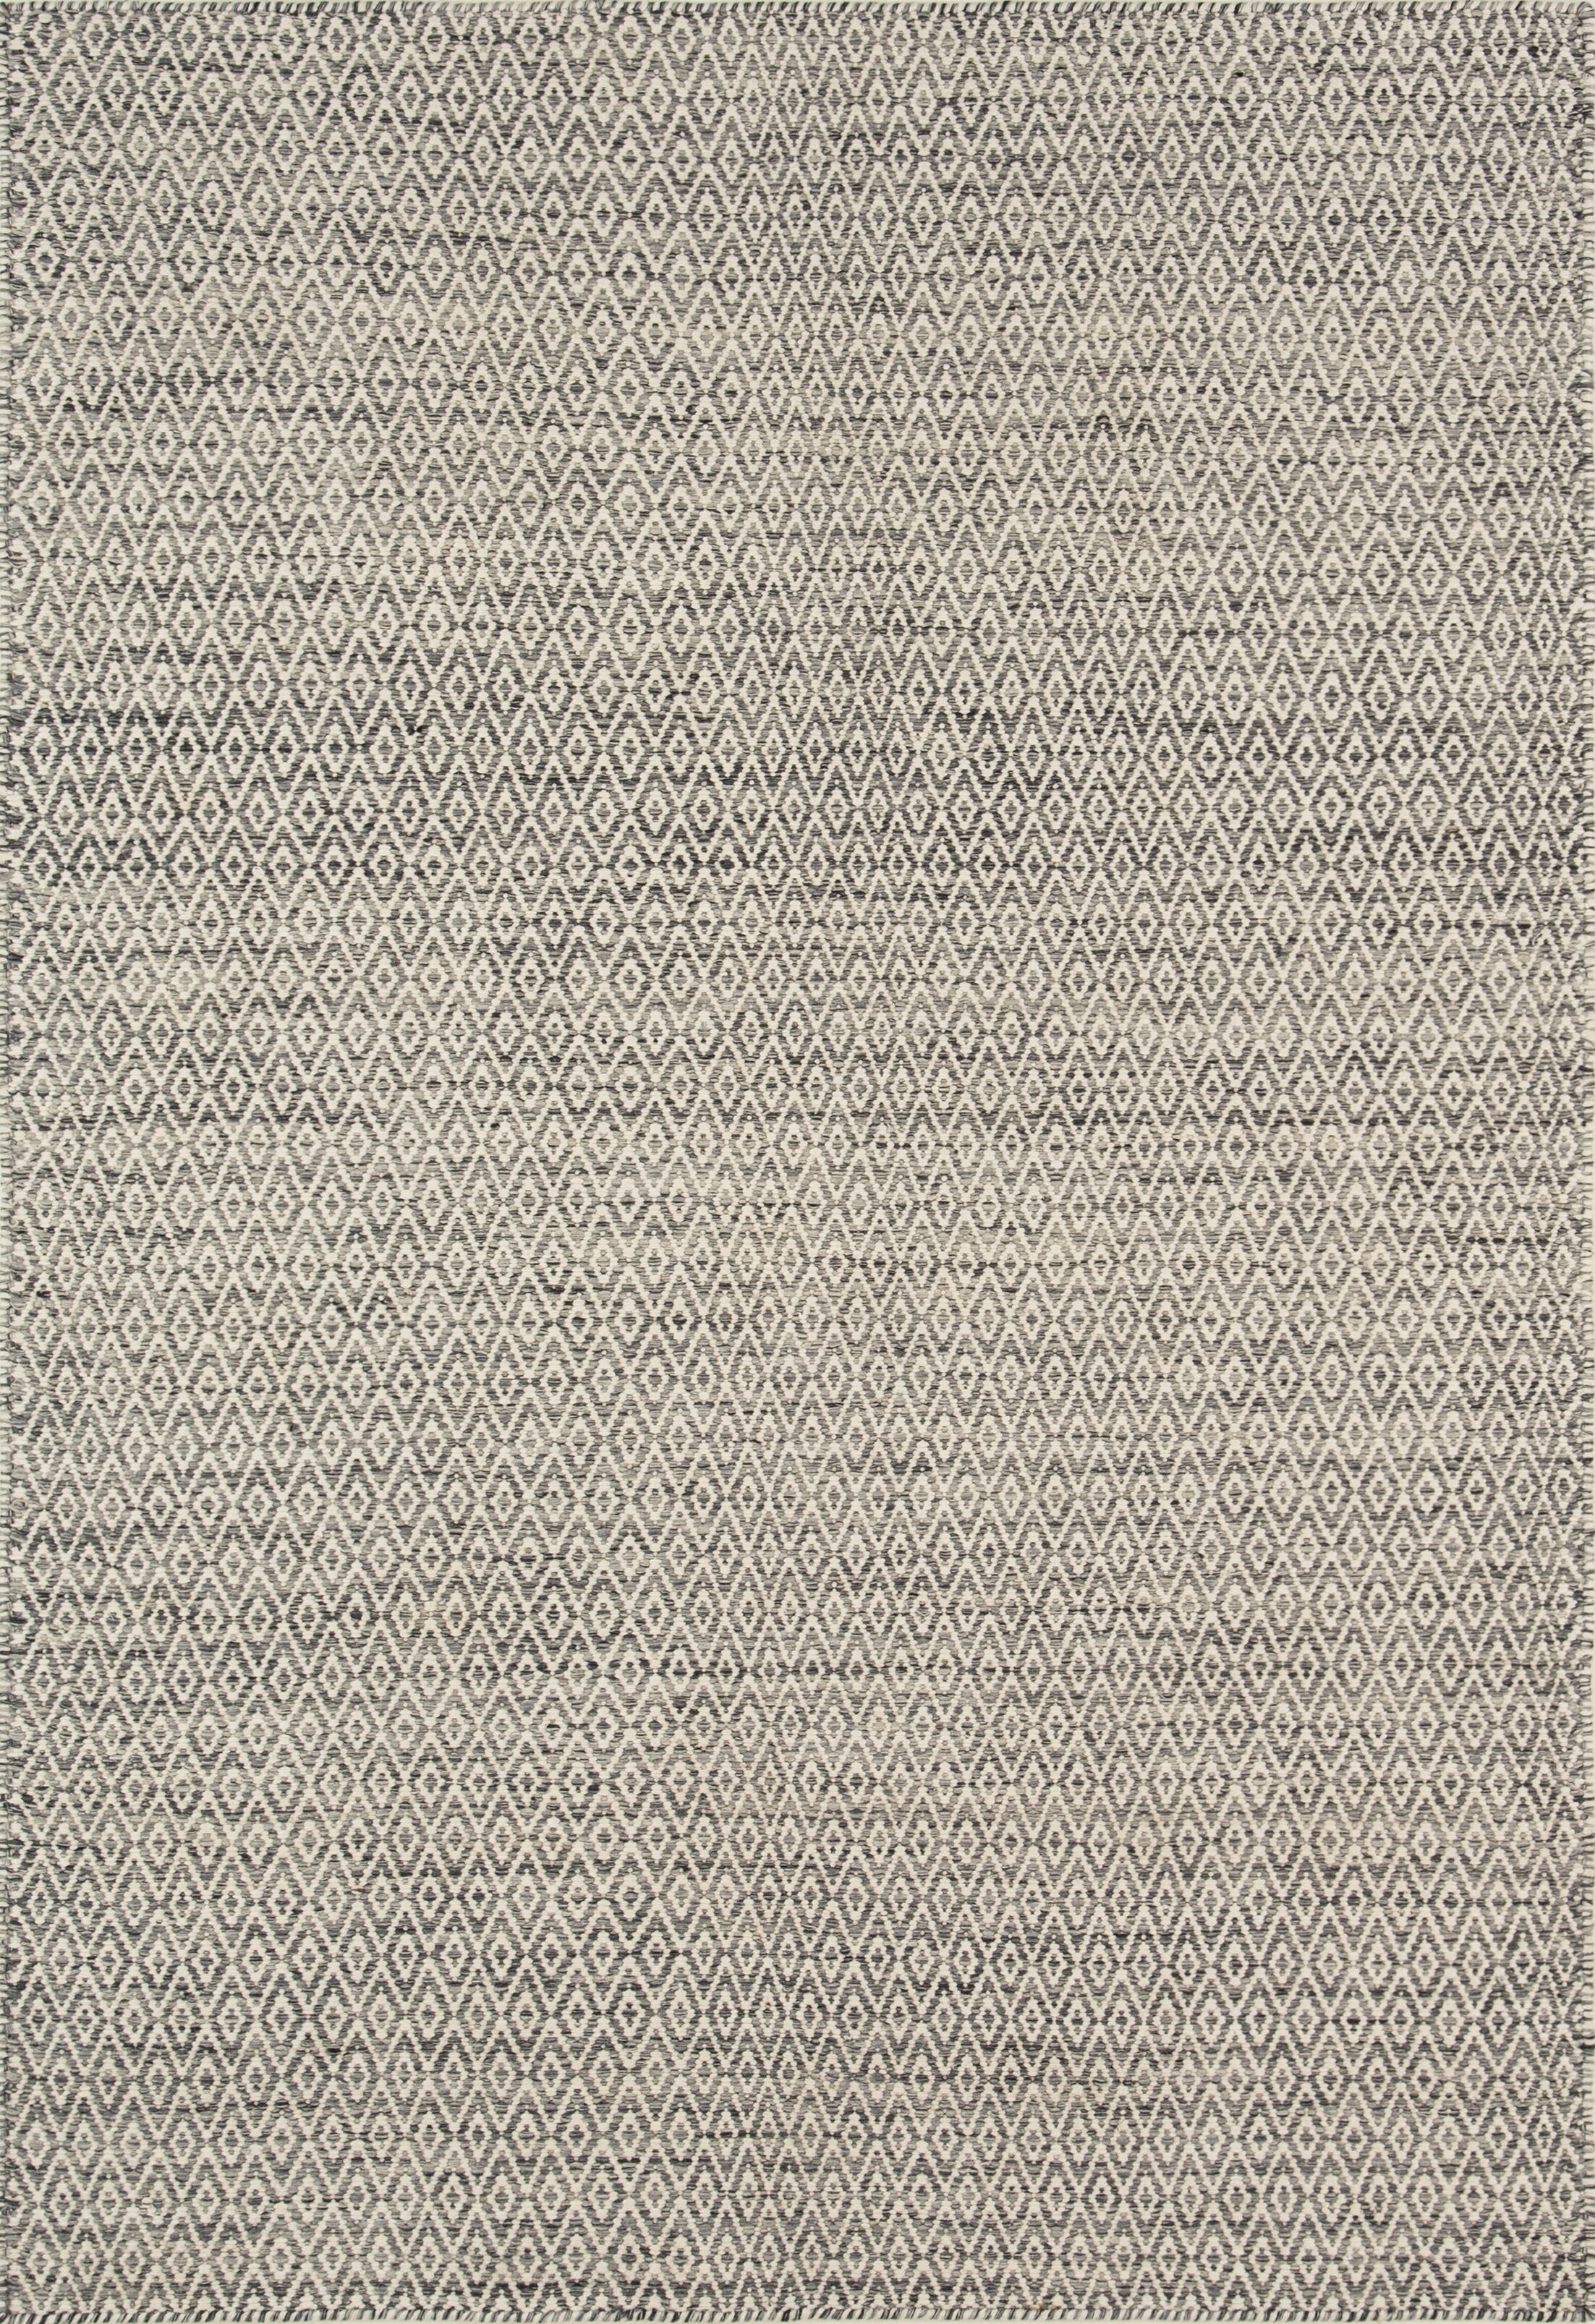 Brooklington Handwoven Flatweave Wool Gray Area Rug Rug Size: Rectangle 7'6